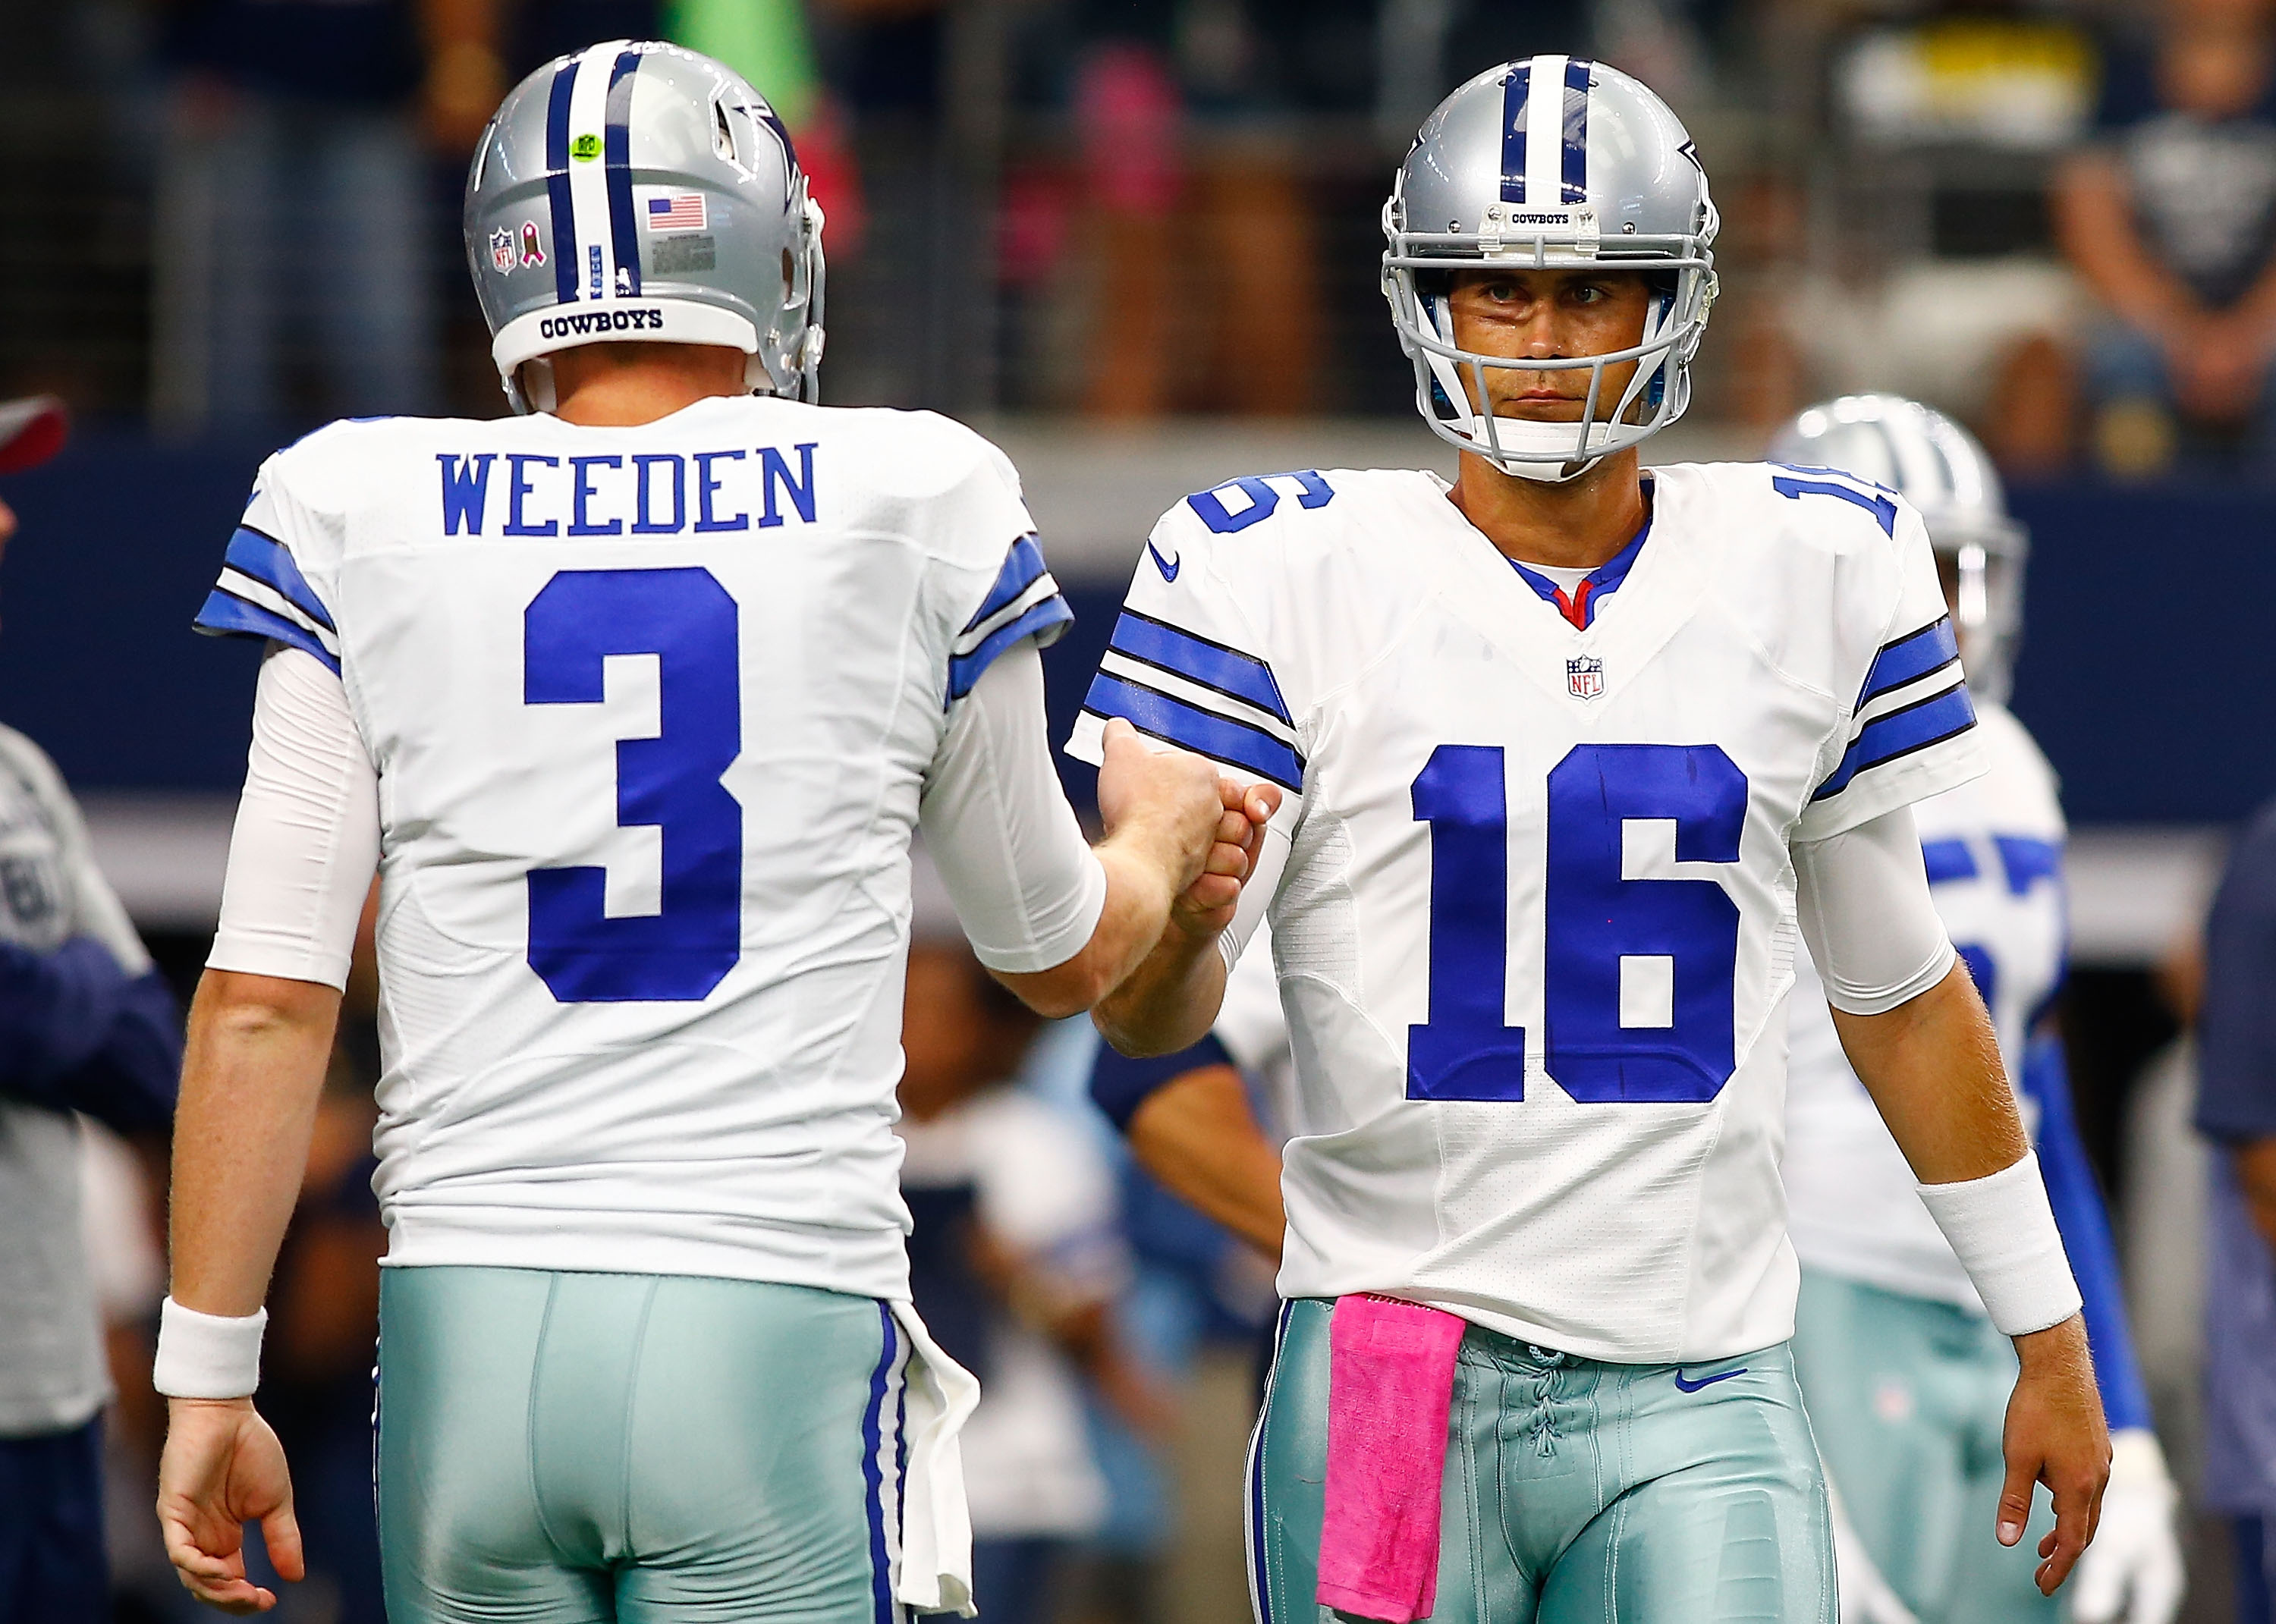 Brandon Weeden (left) is out and Matt Cassel is in at QB for the Cowboys